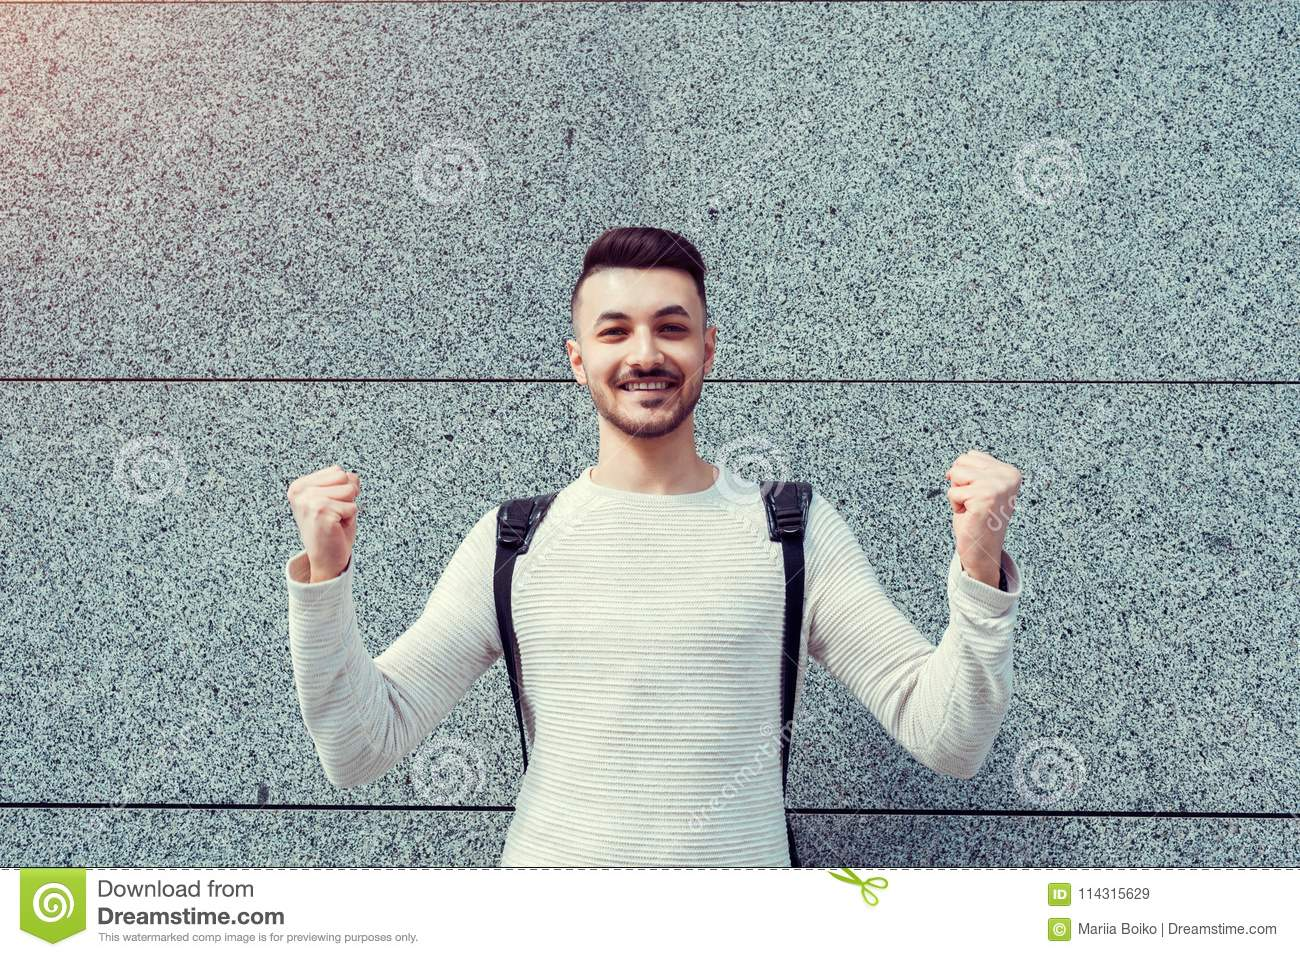 Classes canceled. Happy arabian student outside. Successful and confident young man raised hands.